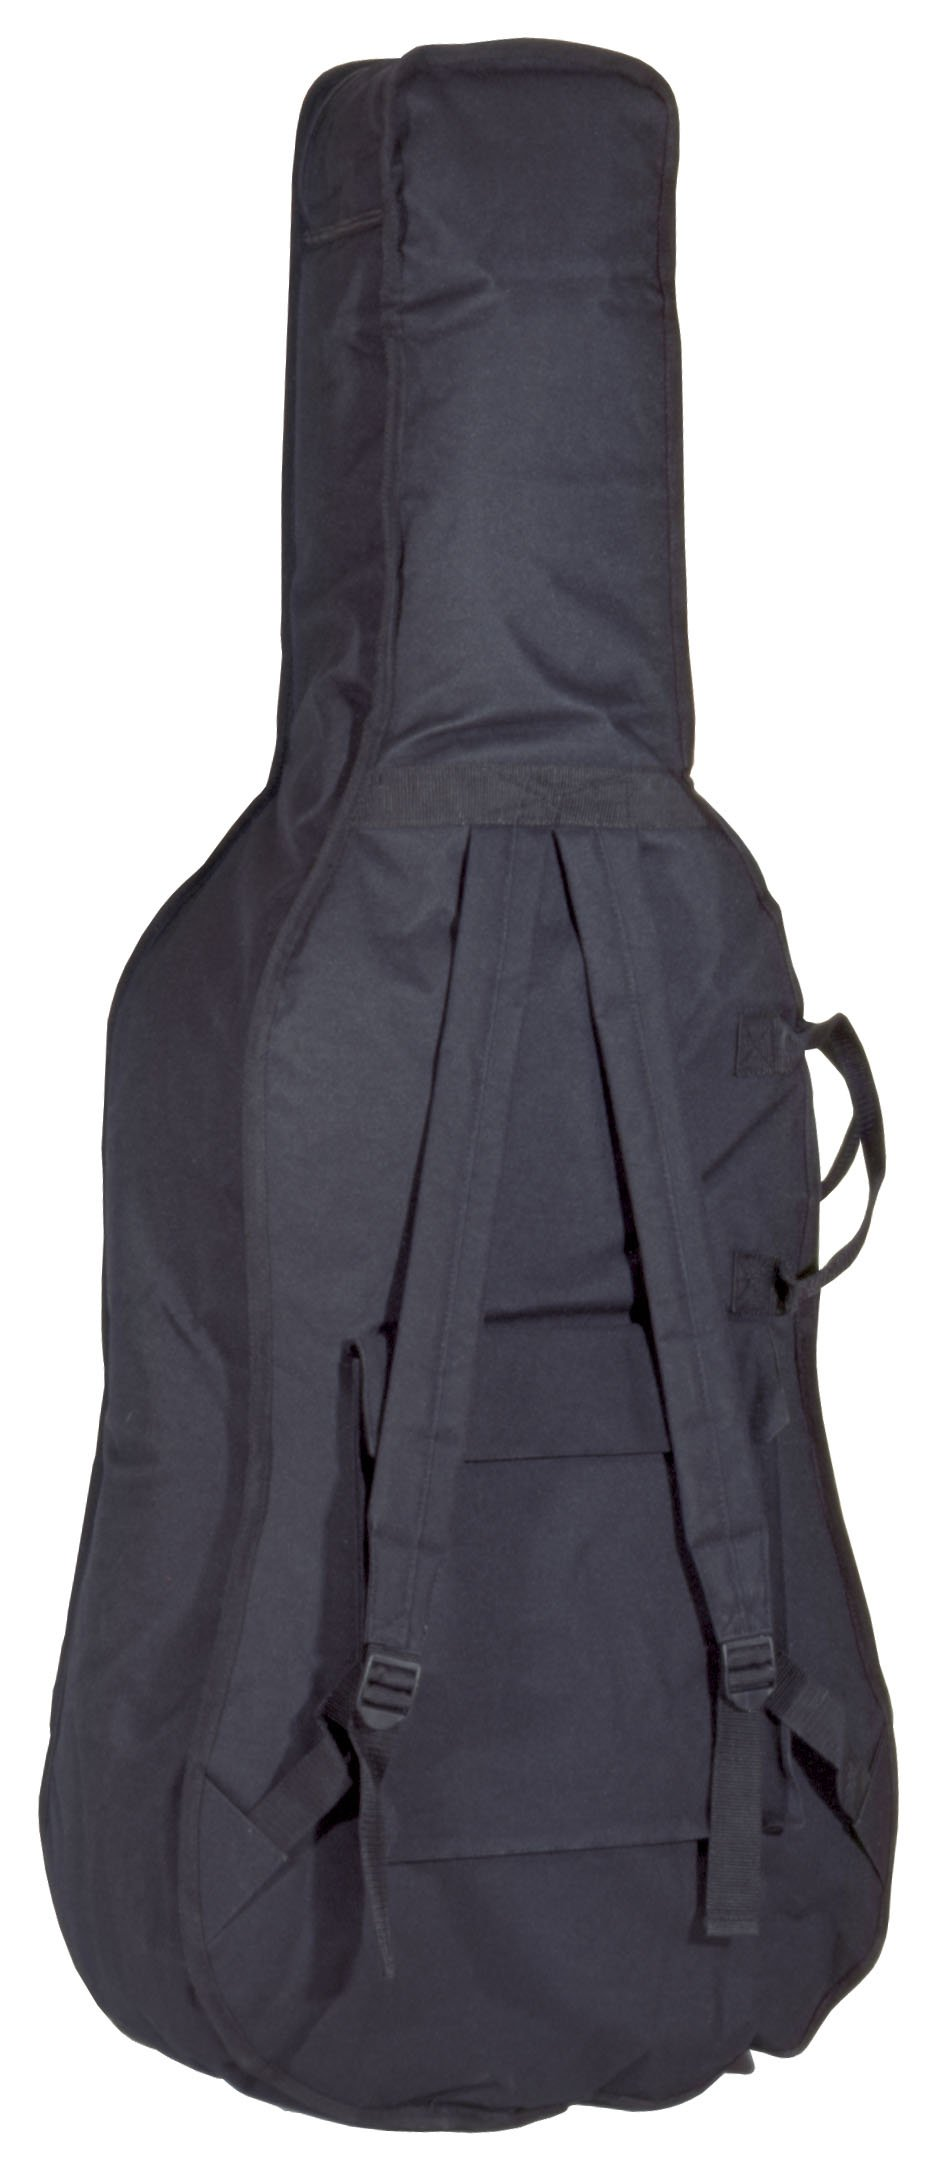 Guardian CV-200-C1/2 Deluxe Cello Bag, 1/2 Size by Guardian Cases (Image #1)